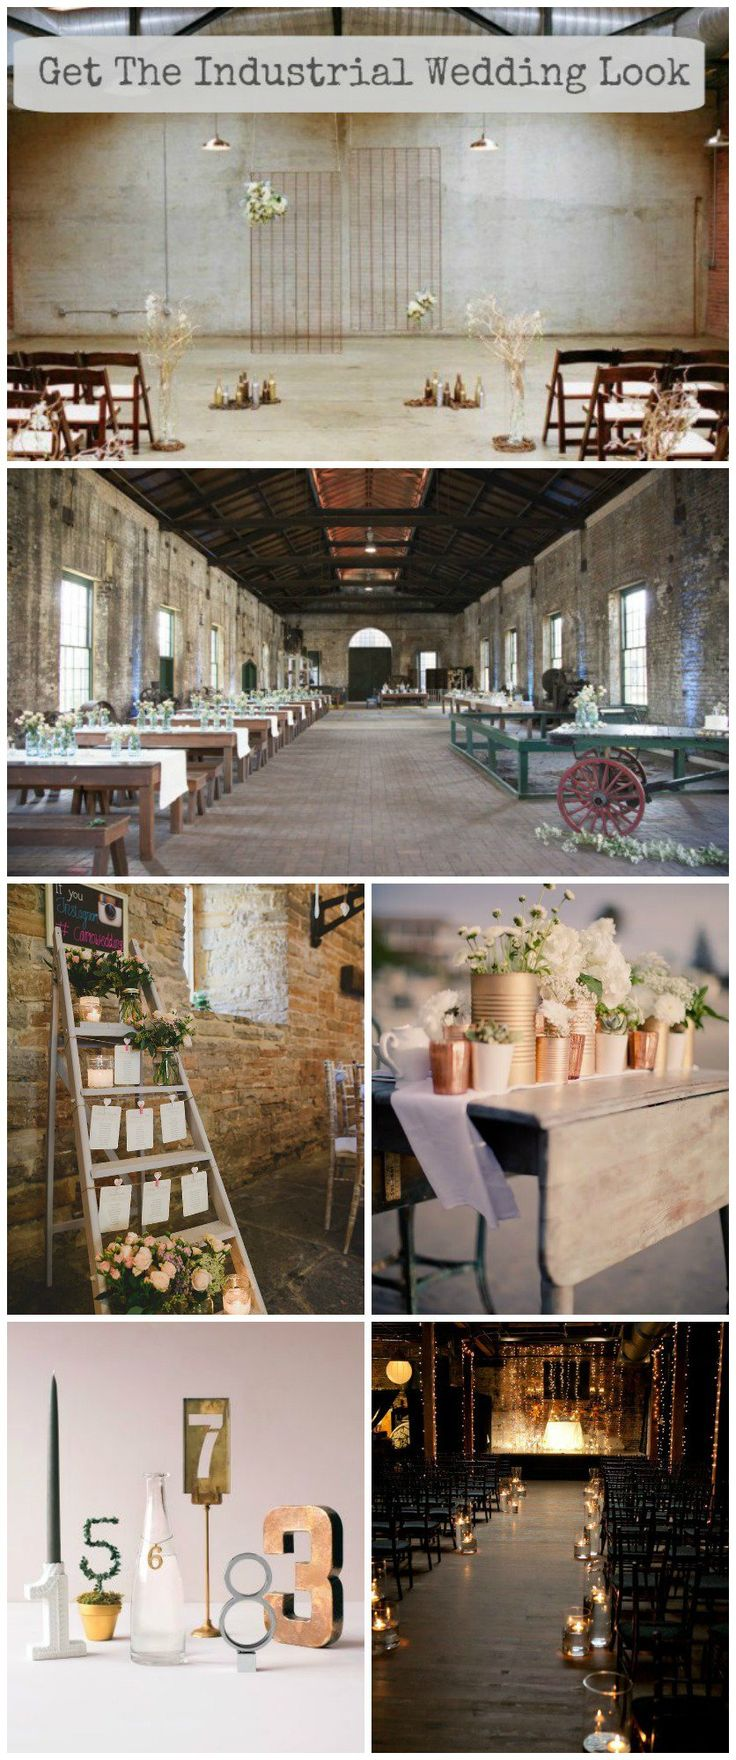 How To Get The Industrial Wedding Look